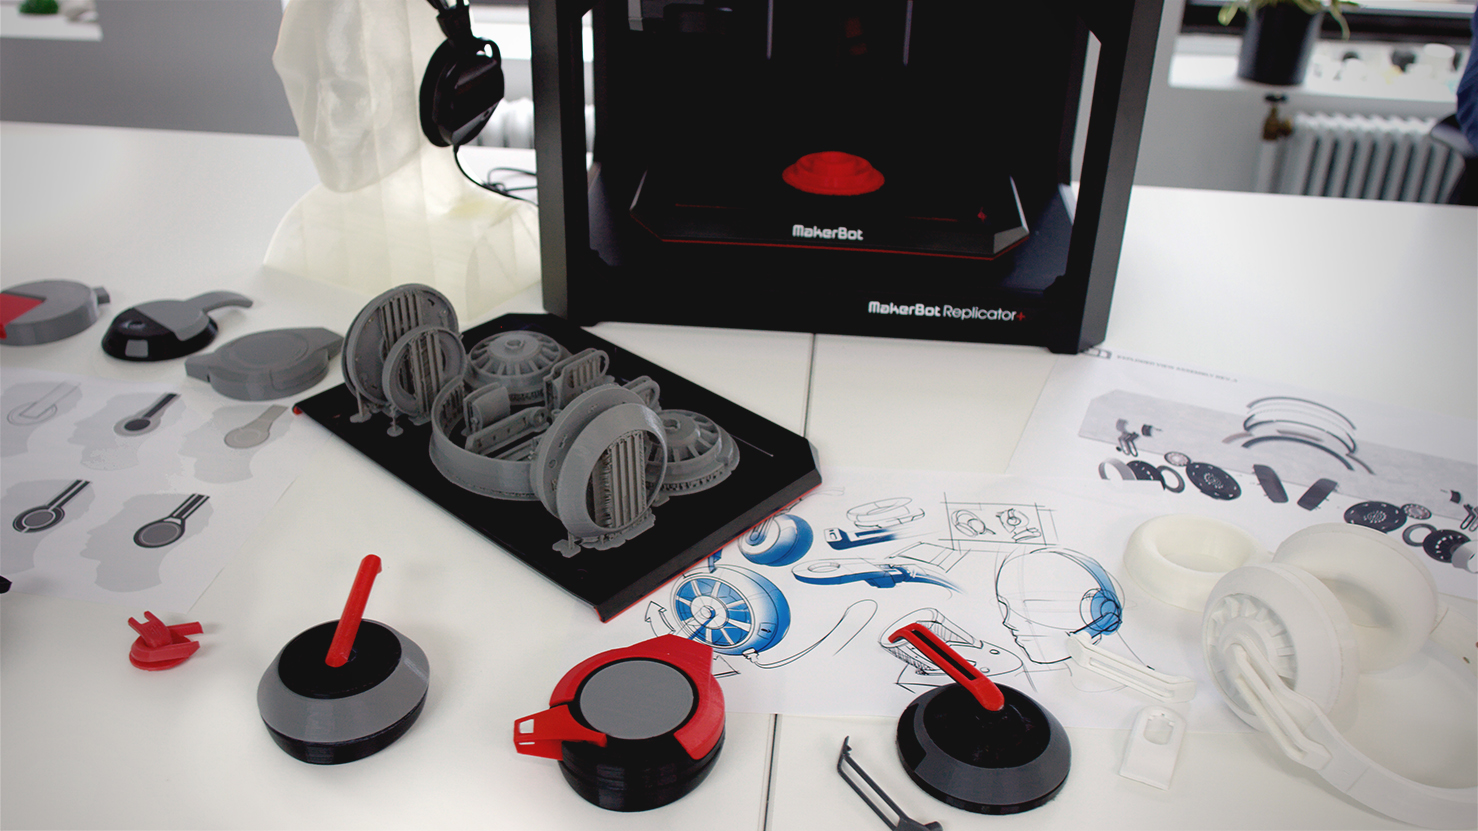 The new MakerBot Replicator+ and its ecosystem